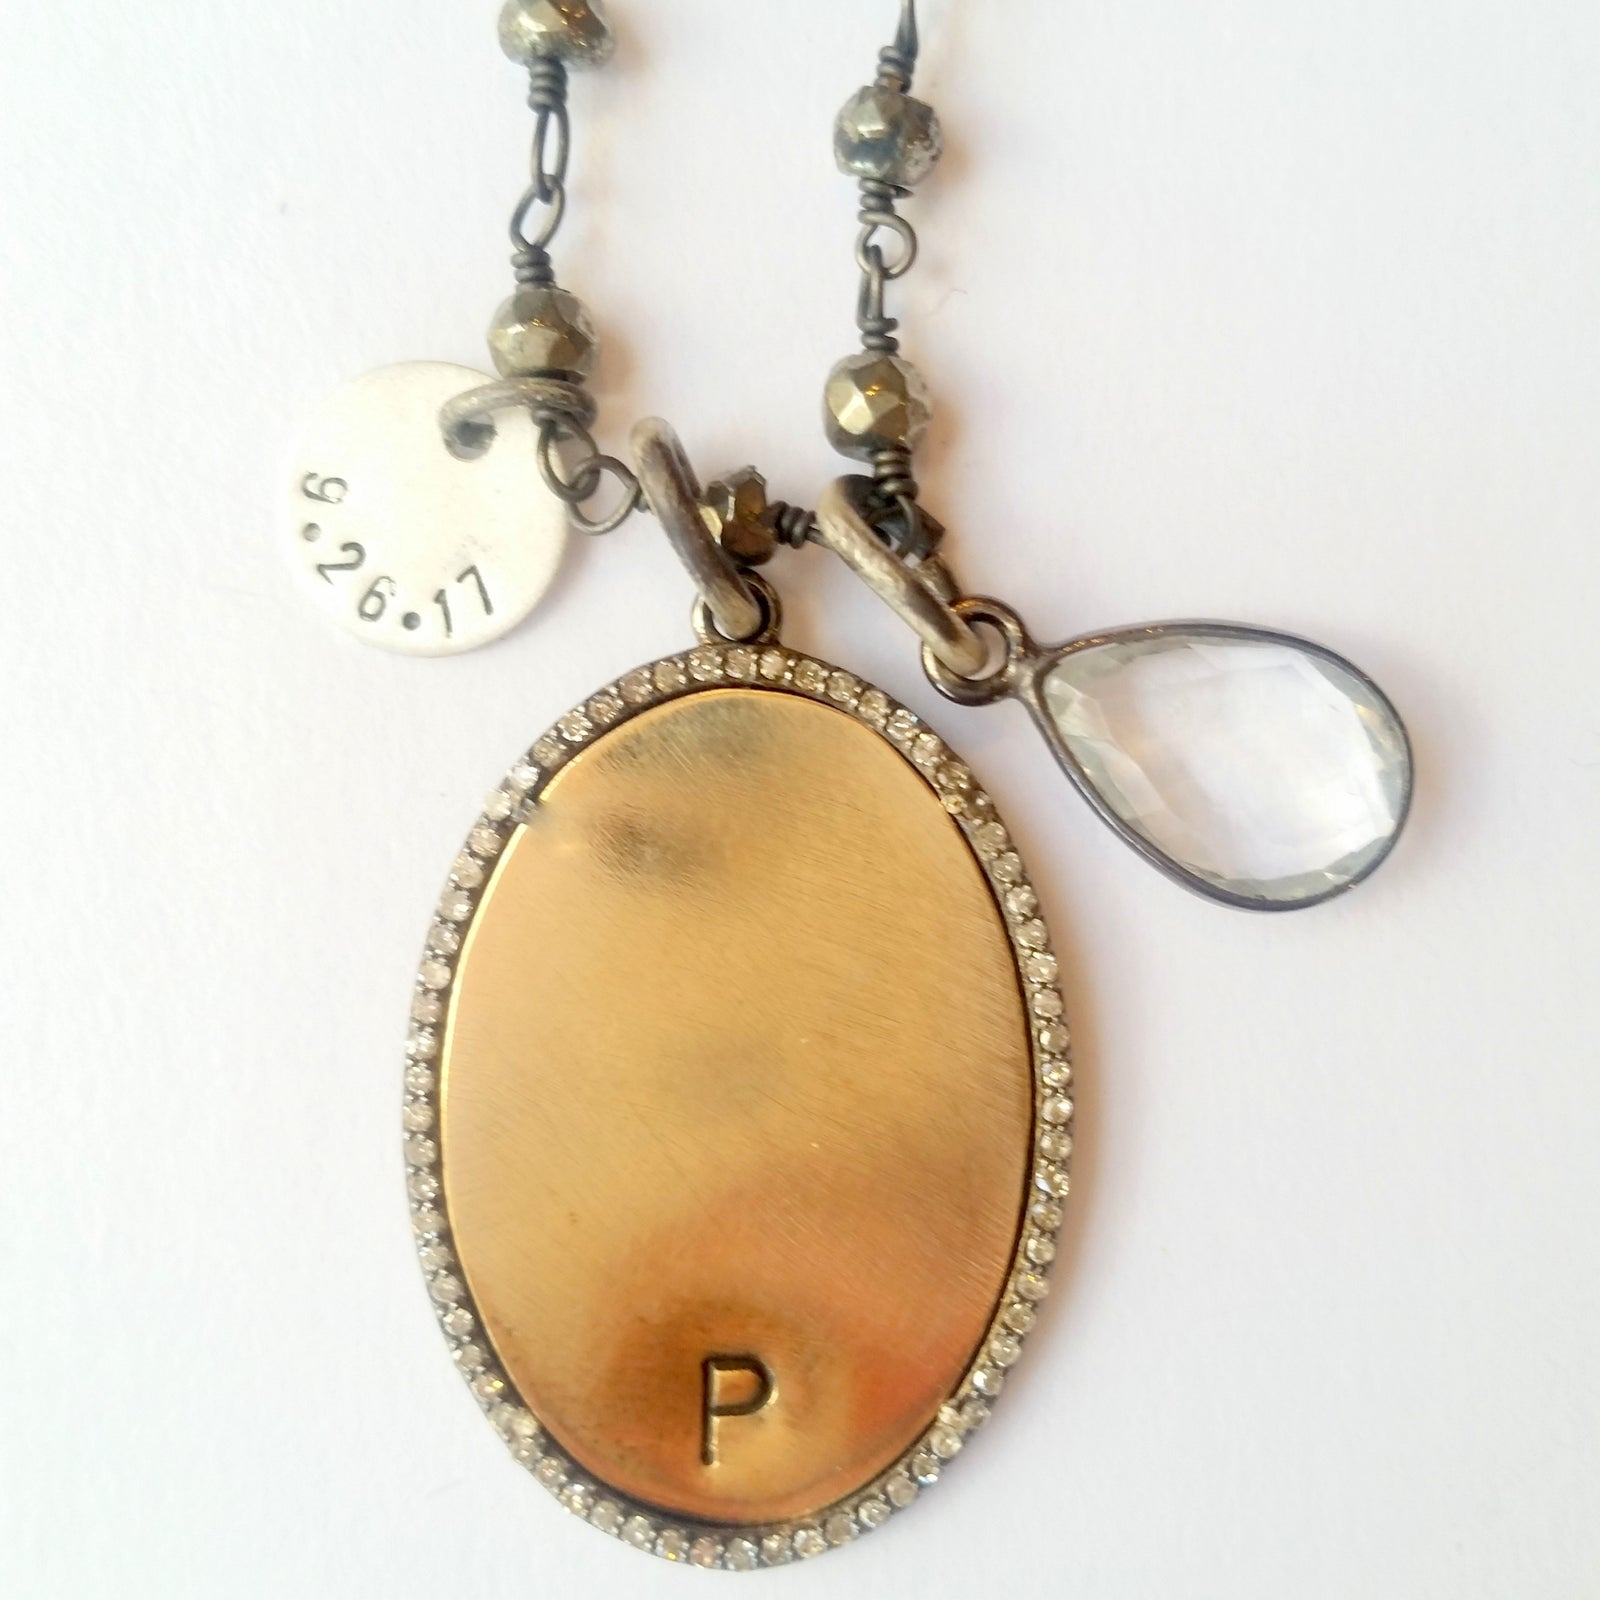 Monogram Disc Necklace with Date Charm